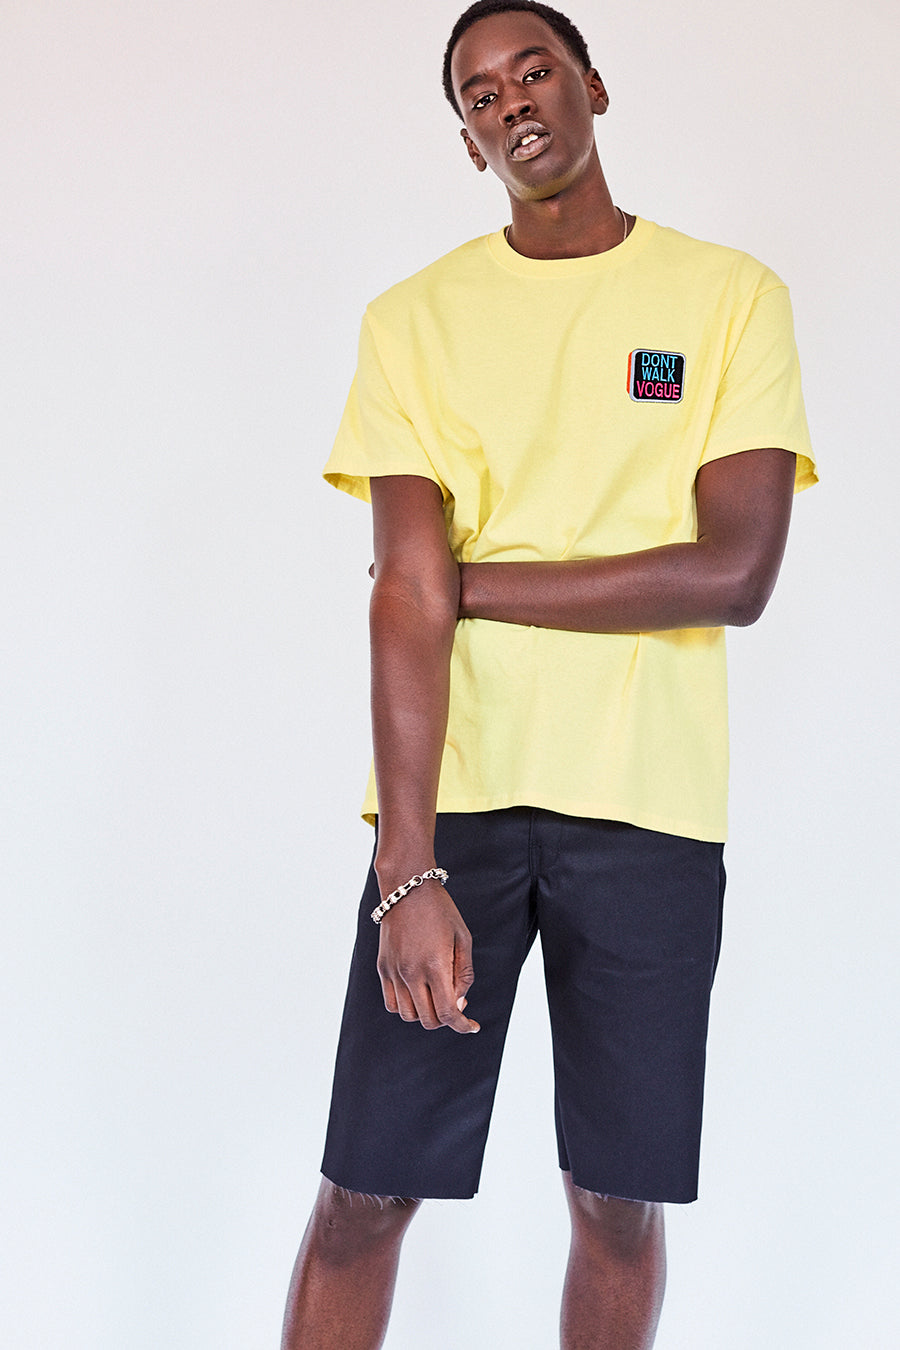 Brand New. Pride Month 2020- New York Label: Your new work from home outfit Shop the Dont Walk Vogue pale yellow T-Shirt featuring chest embroidery inspired by old school Walk/Dont Walk crosswalk signs on the front and St. Marks Couture New York logo on the back. Hand silkscreen printed in New York with love.